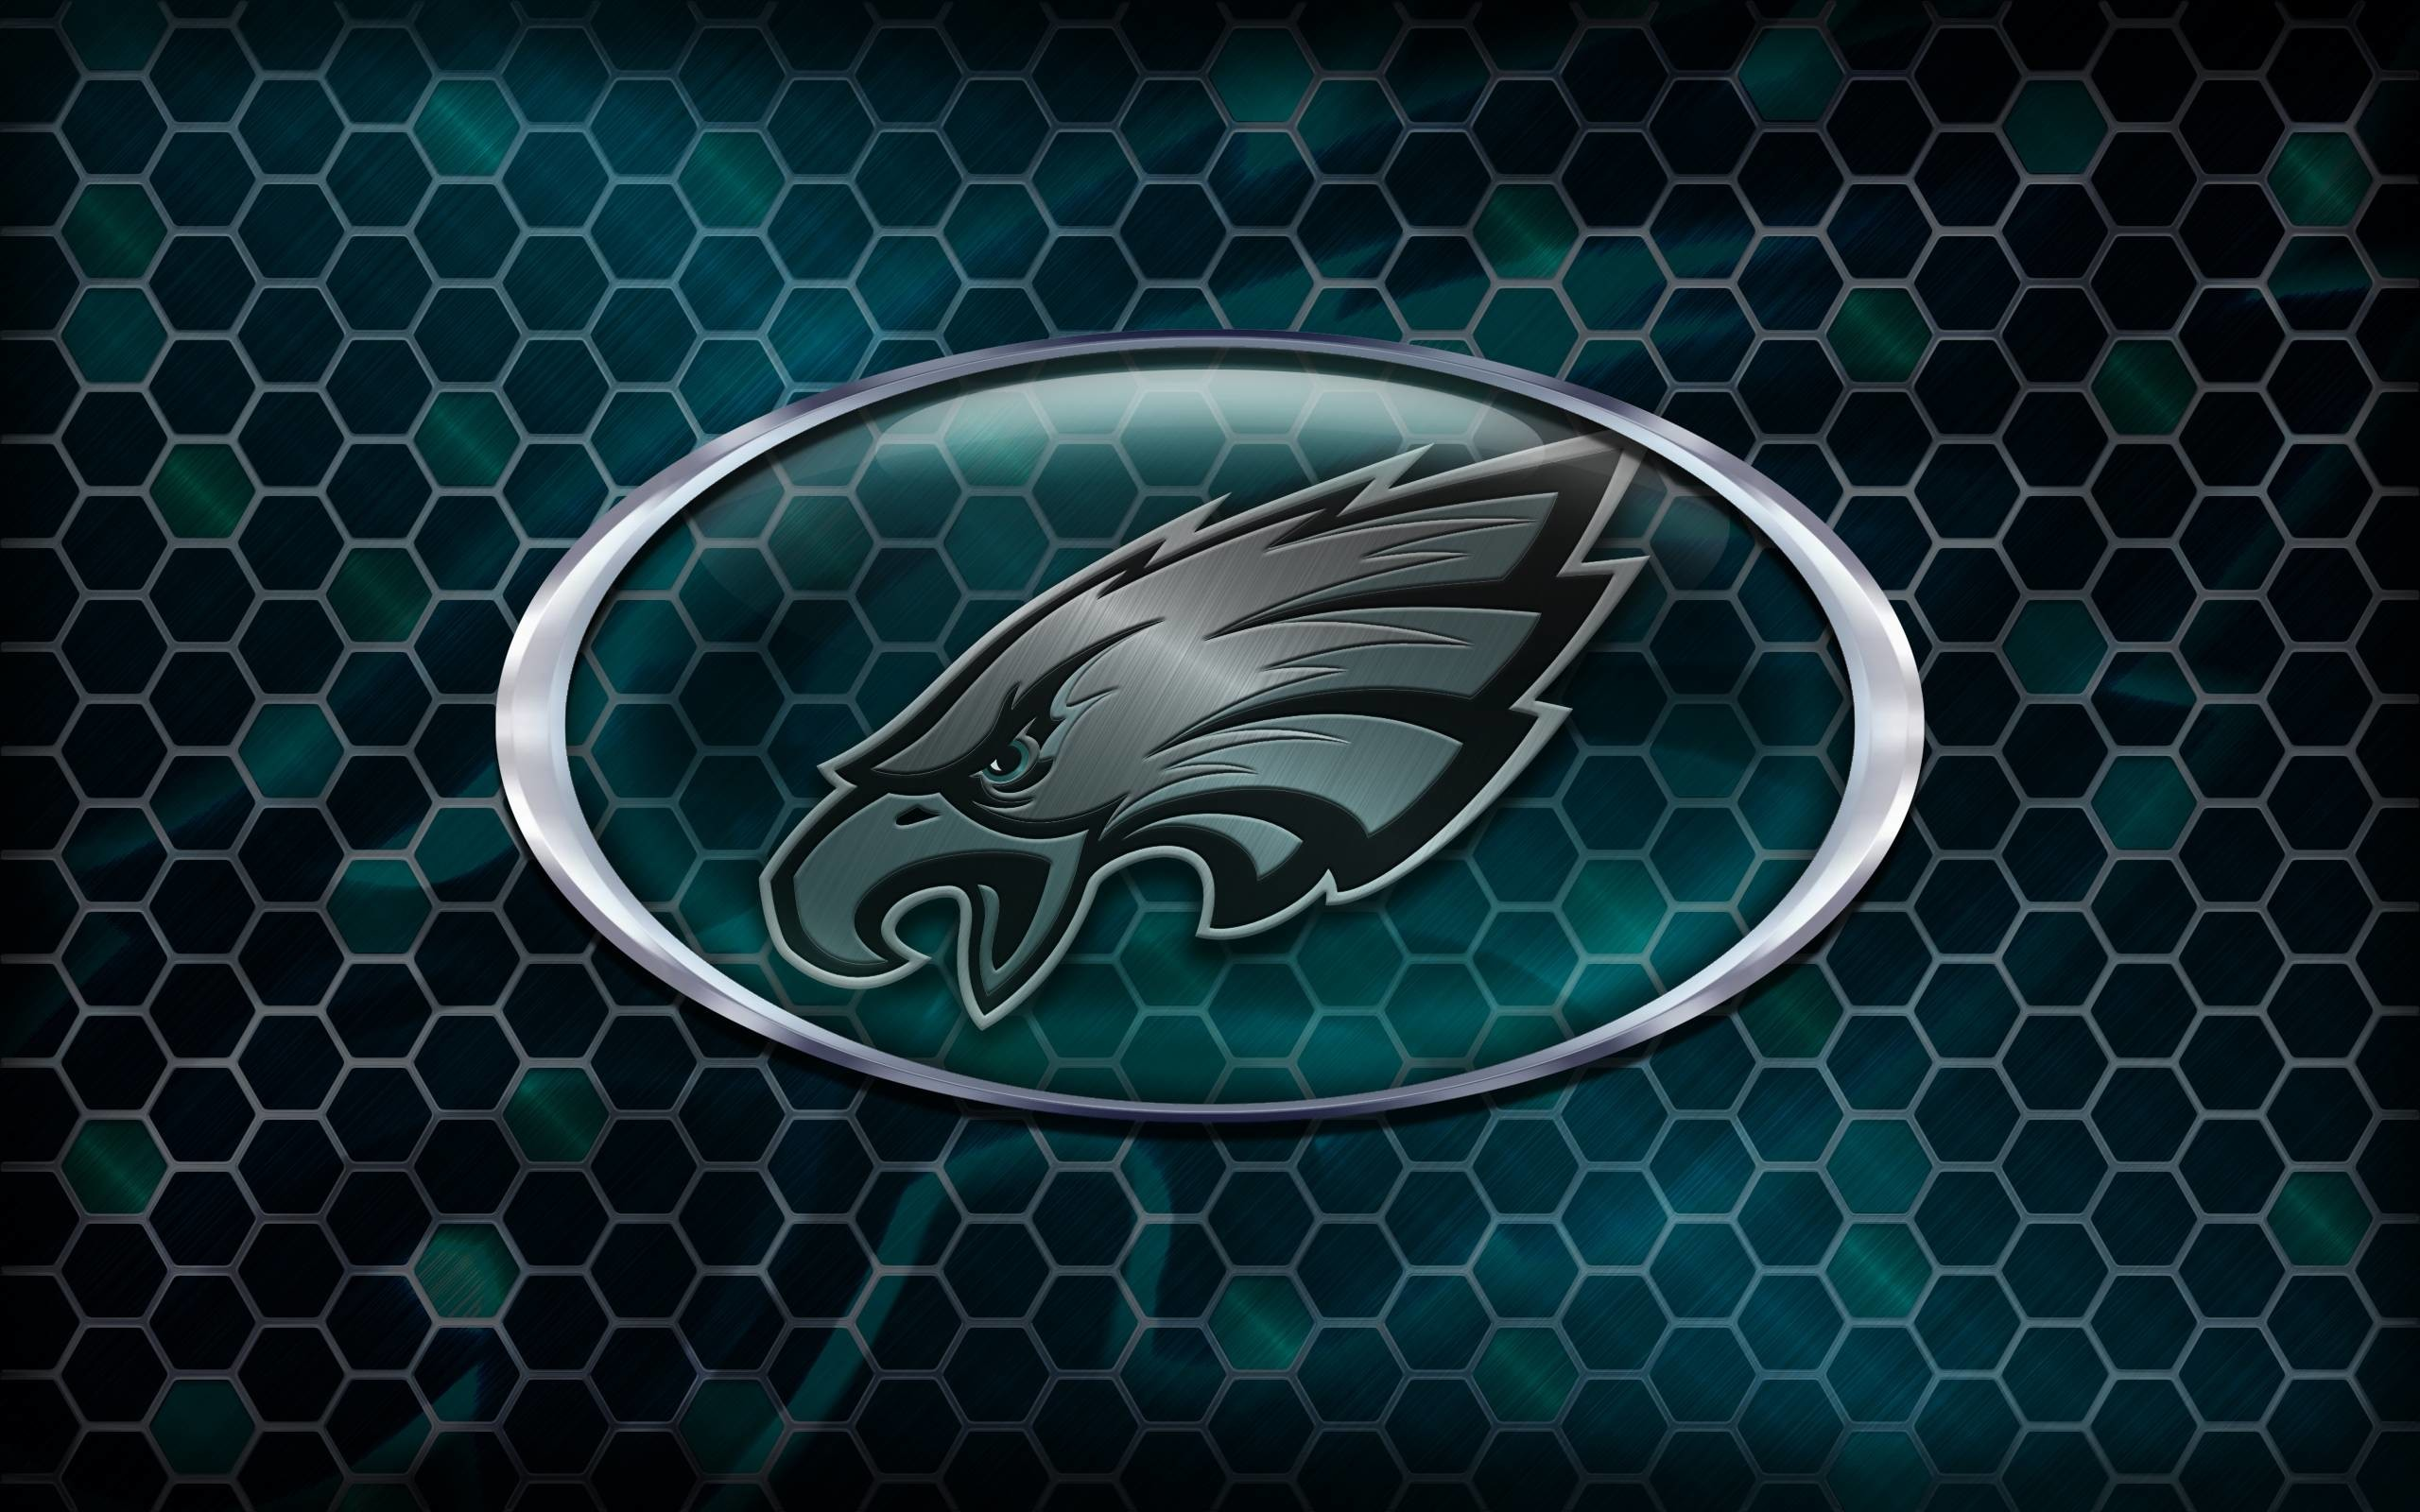 2560x1600 Philadelphia Eagles Logo By Graffitimaster Funny Wallpaper Wallpaper